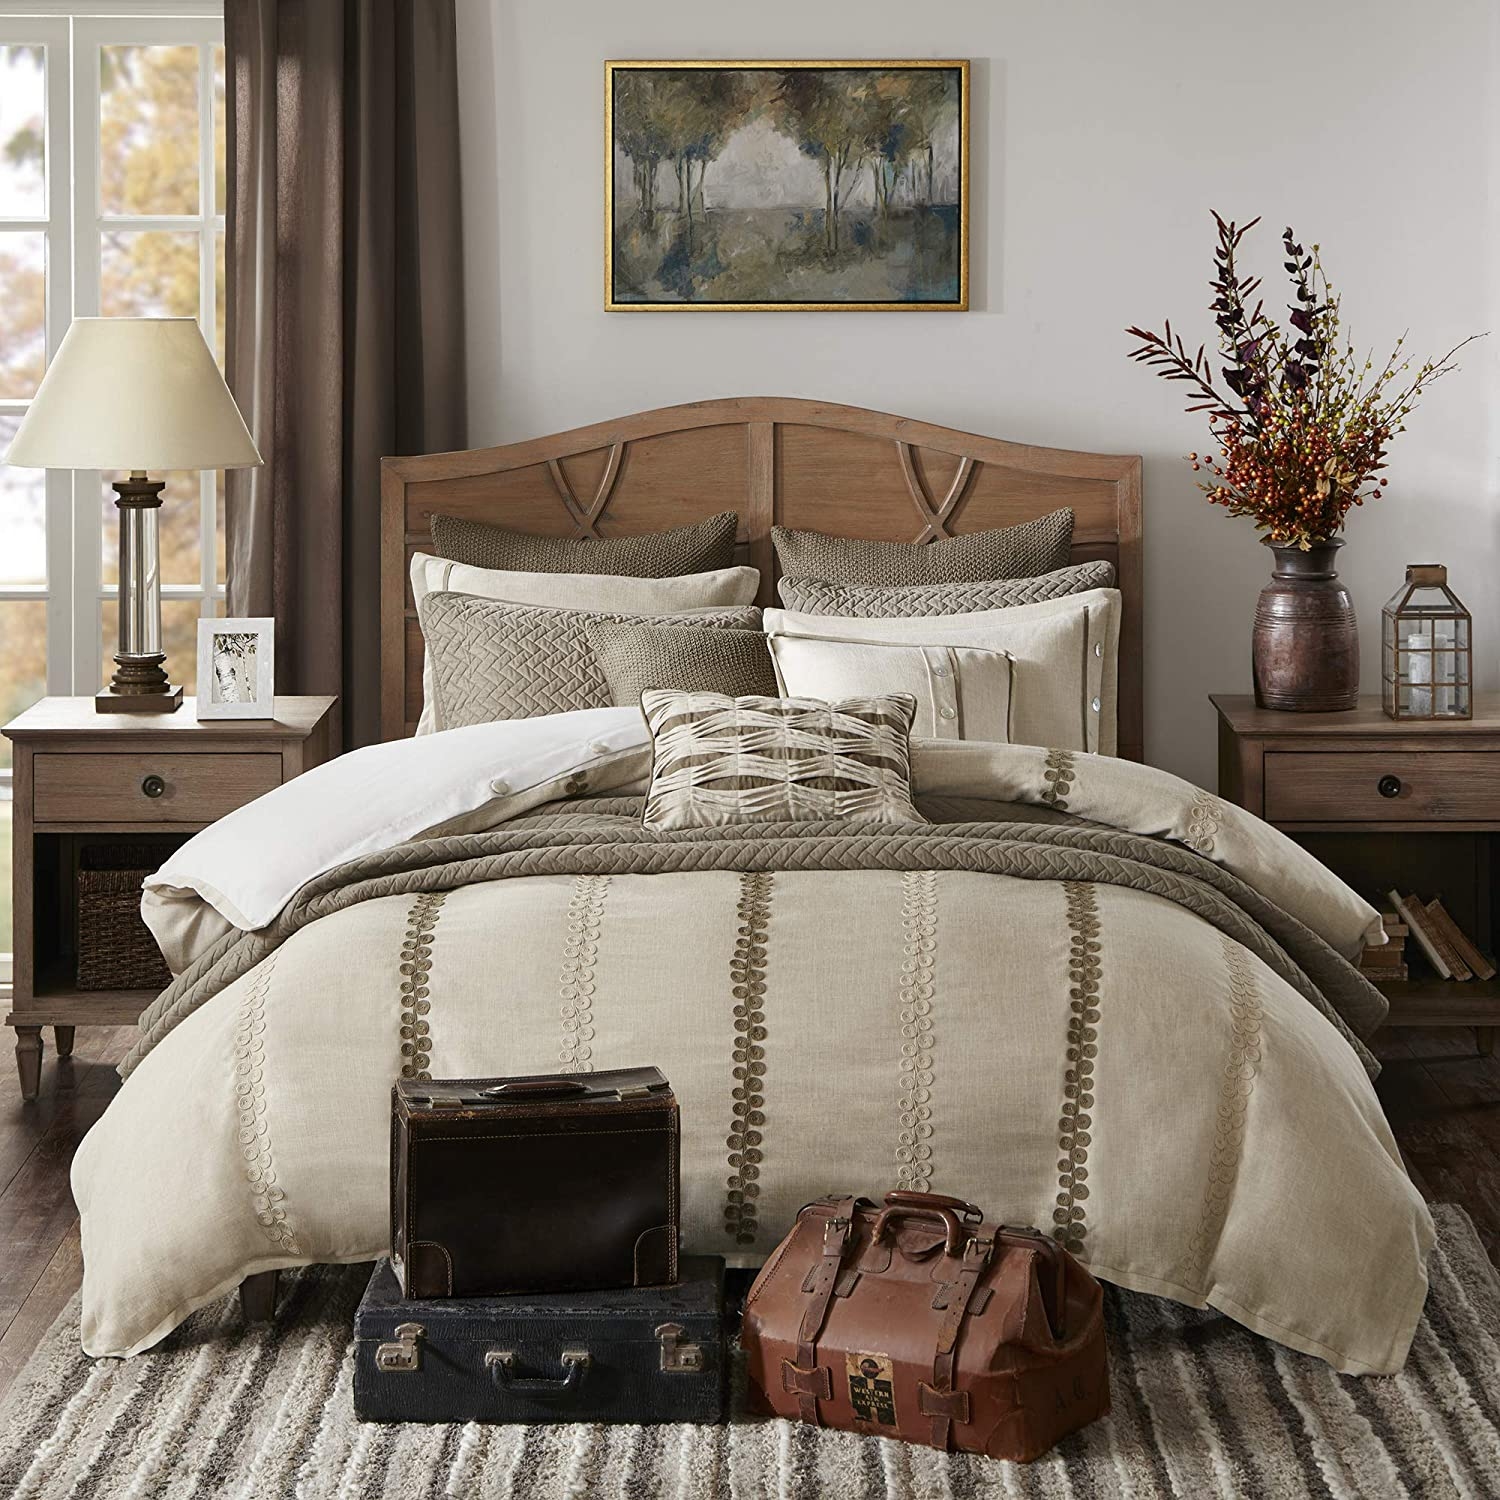 Madison Park Signature Chateau King Size Bed Comforter Duvet 2-In-1 Set Bed In A Bag - Taupe , Soutache Cord Embroidery – 9 Piece Bedding Sets – Faux Linen Bedroom Comforters